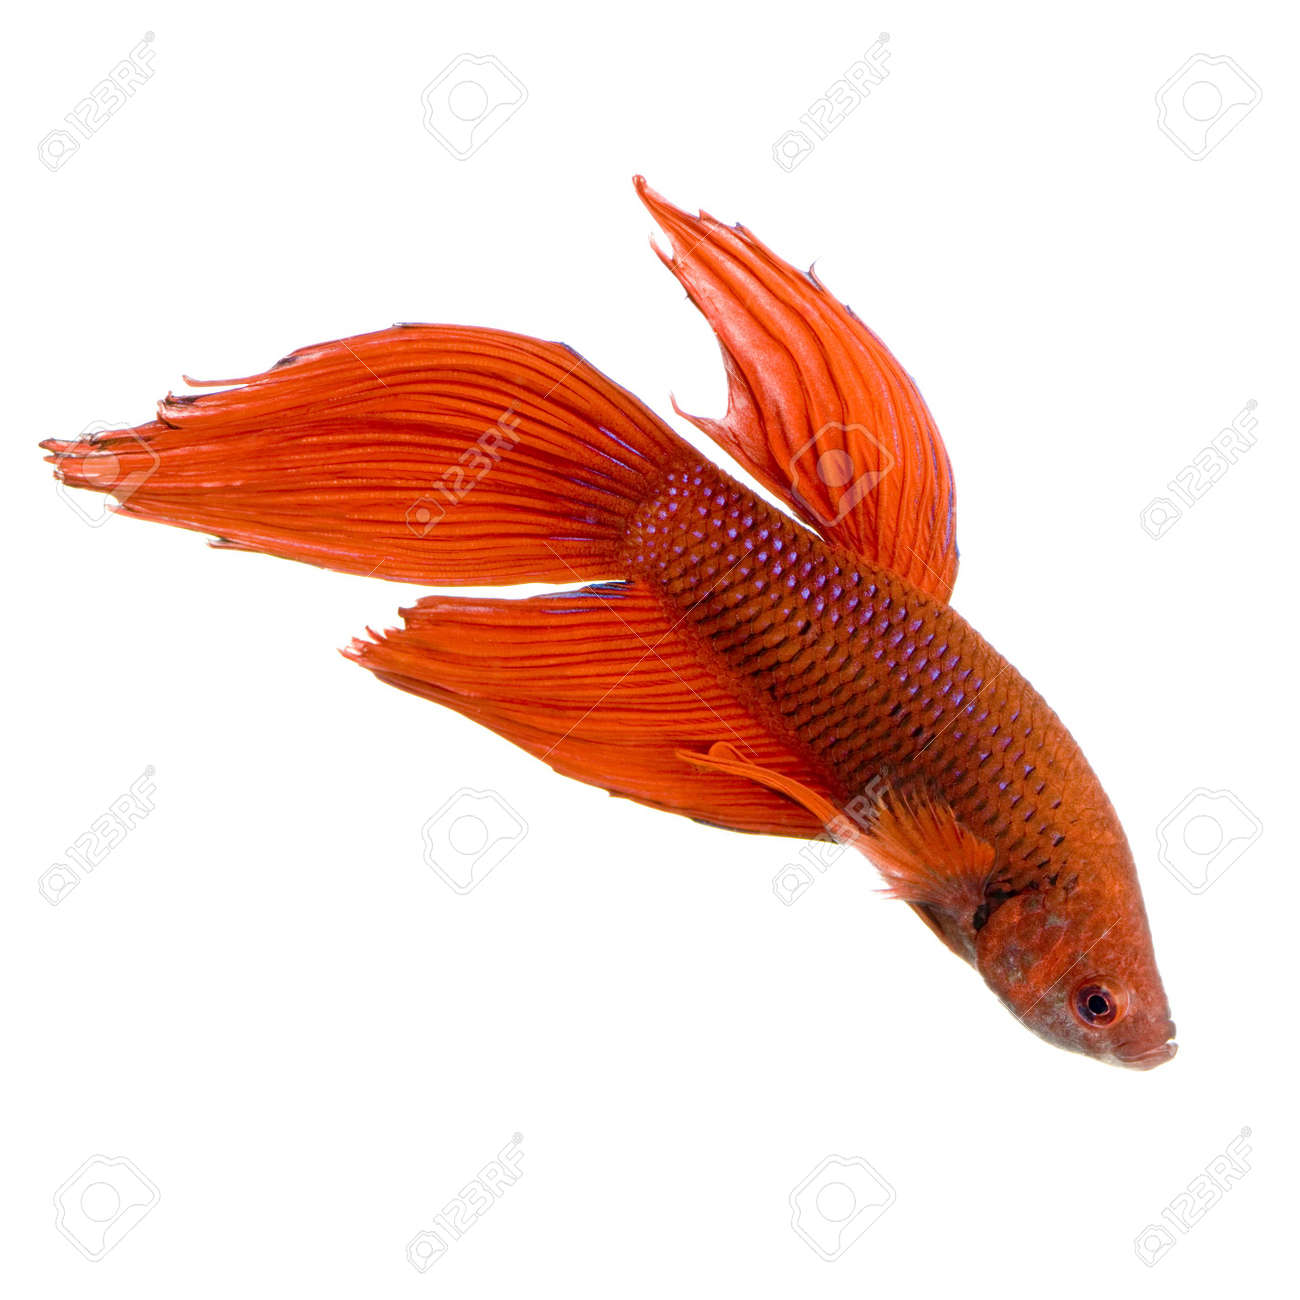 shot of a red Siamese fighting fish under water in front of a white background Stock Photo - 1124837